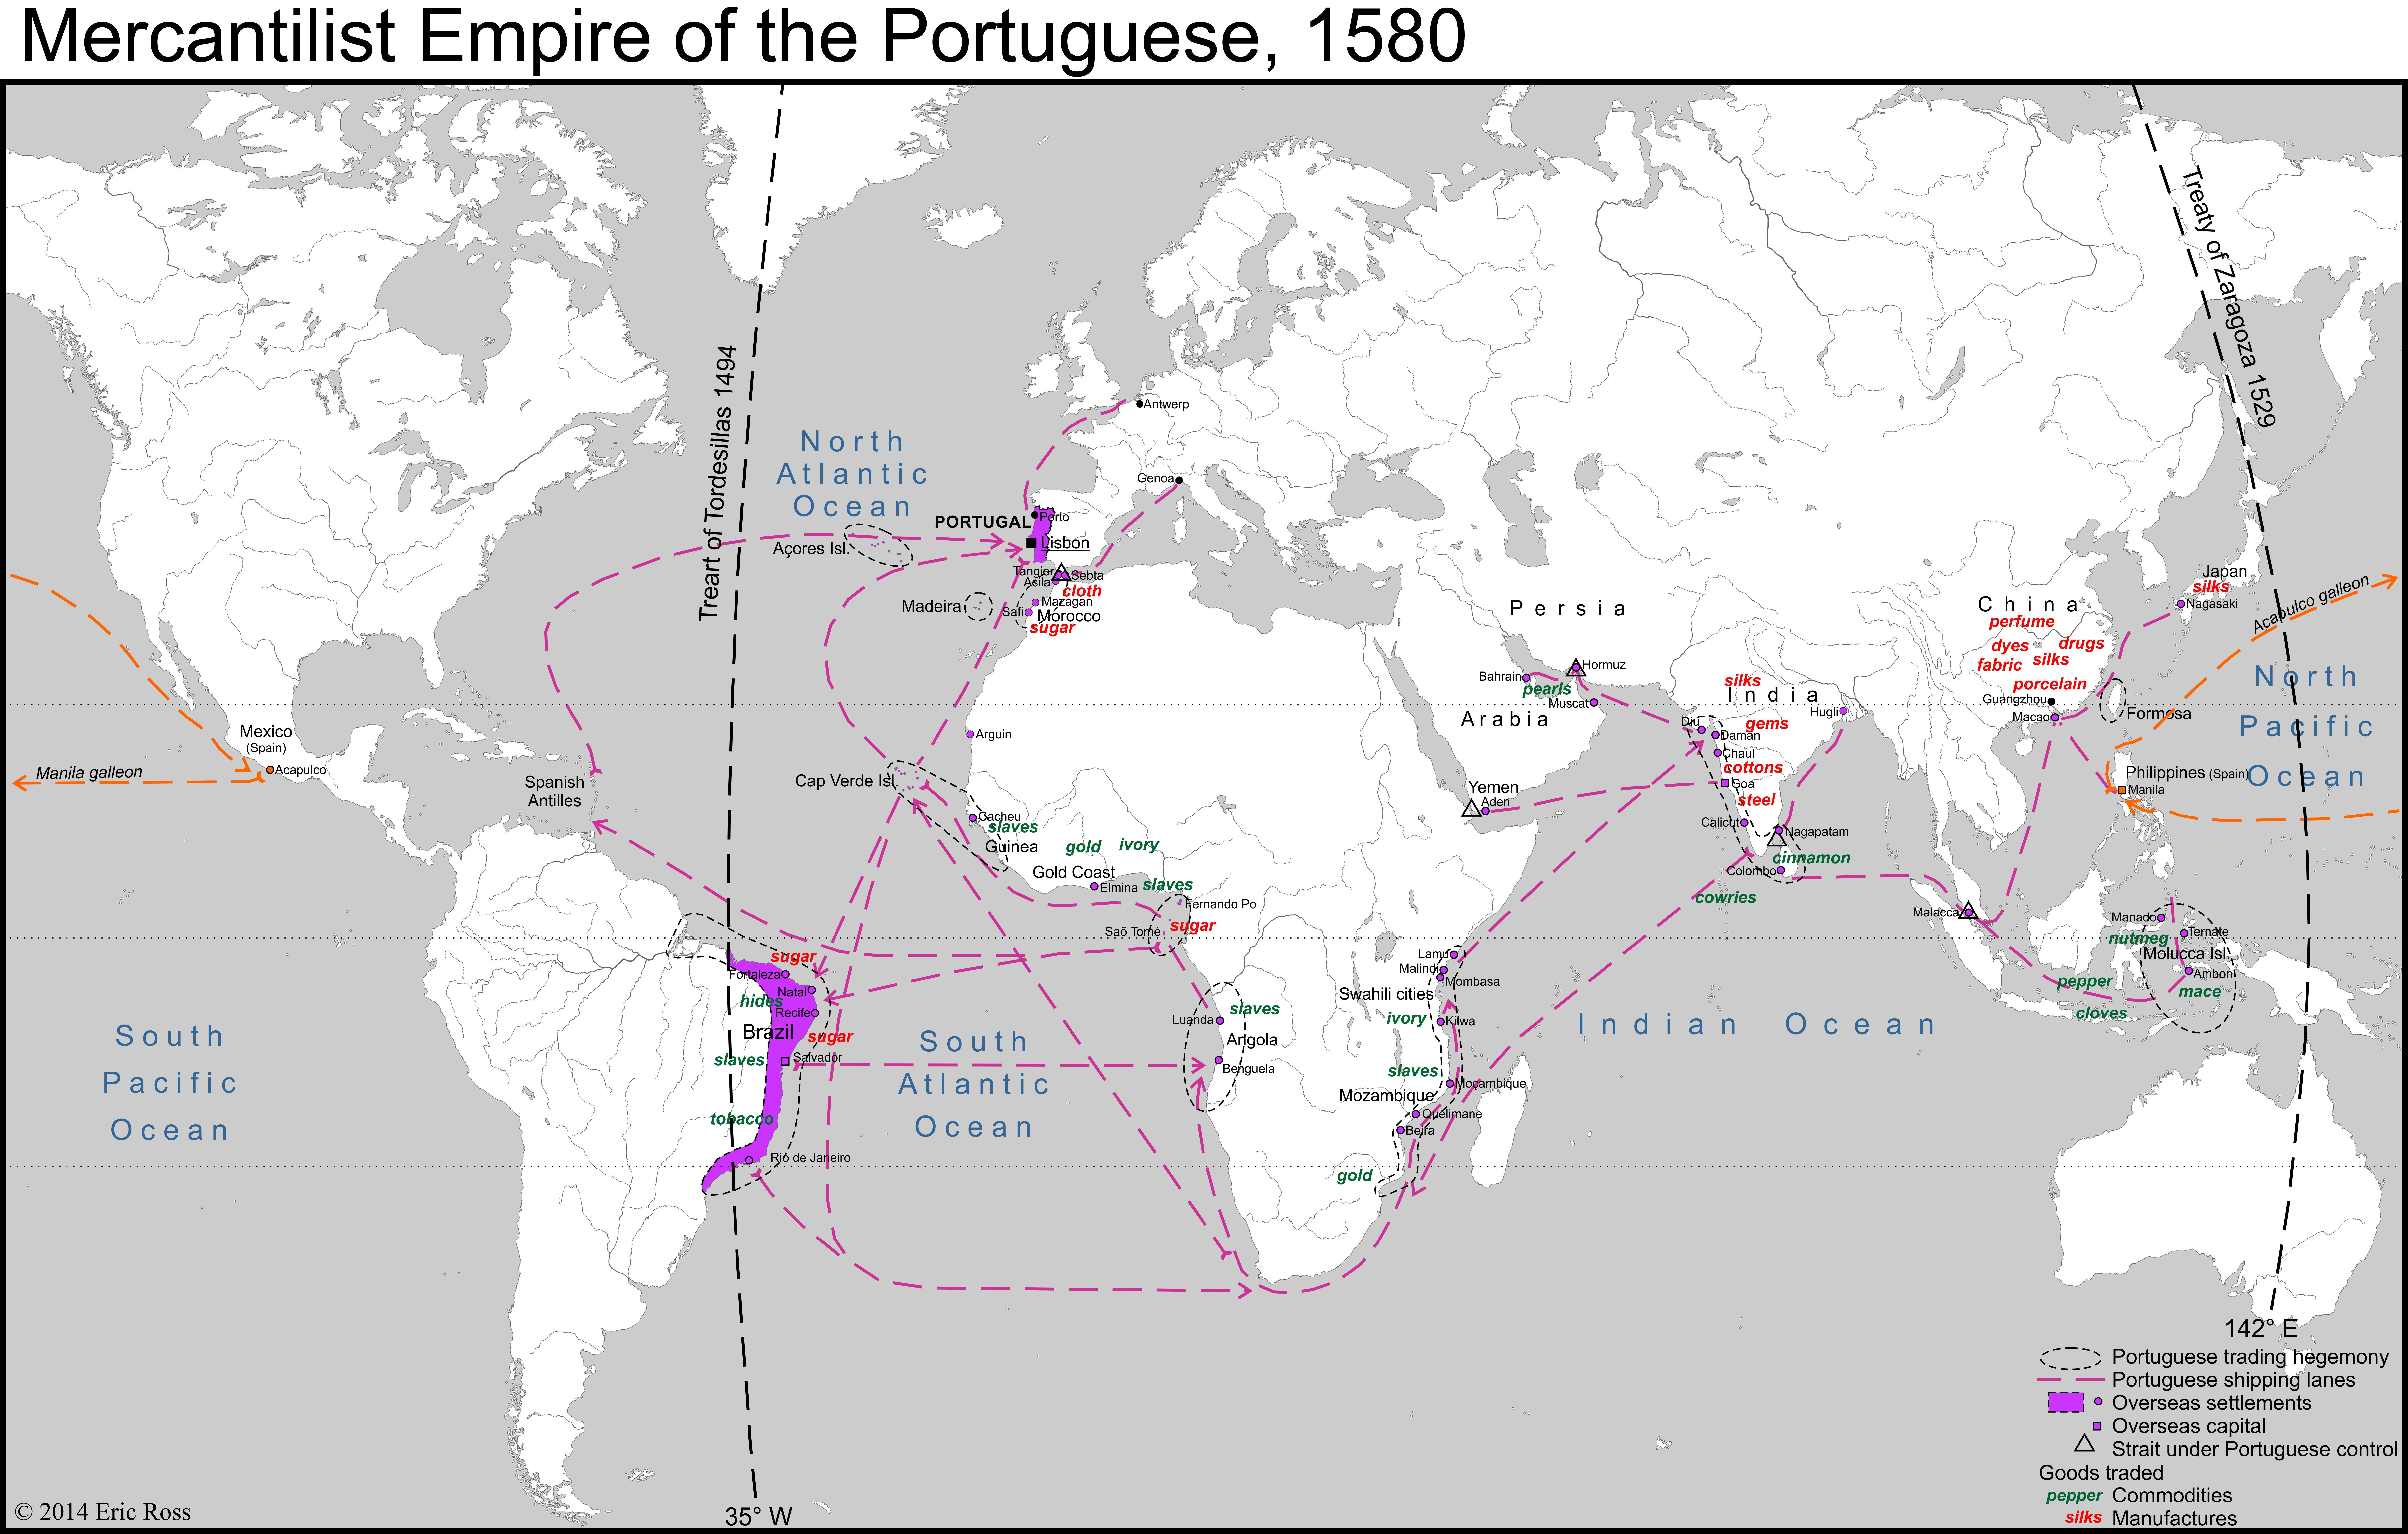 Mercantilist empire of portugal 1580 by eric ross map portugal mercantilist empire of portugal 1580 by eric ross map portugal world gumiabroncs Images